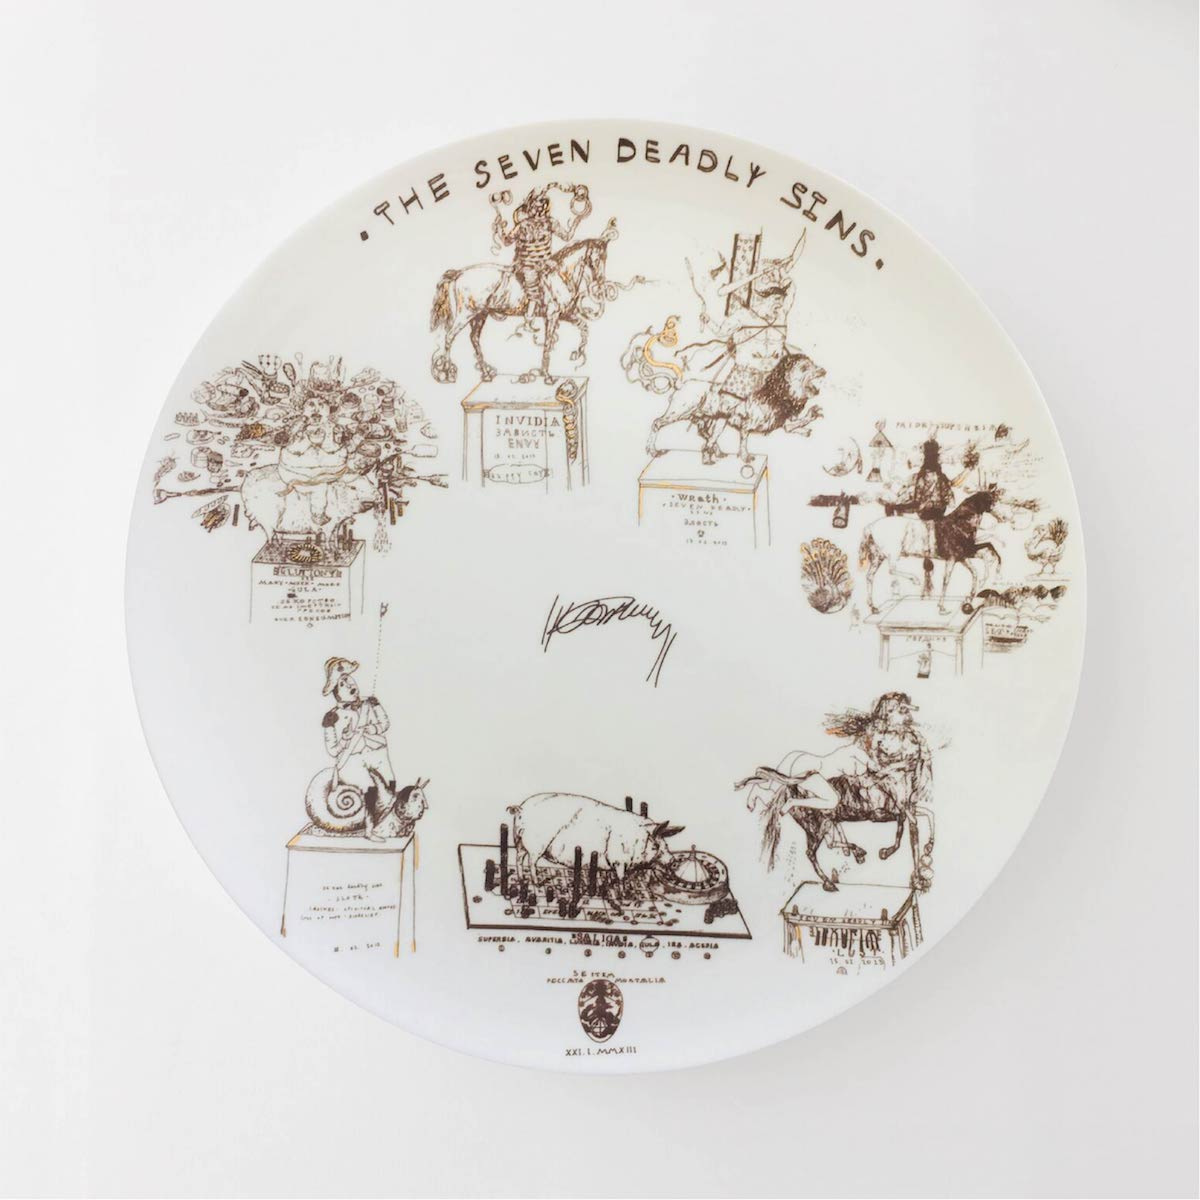 The Seven Deadly Sins plate